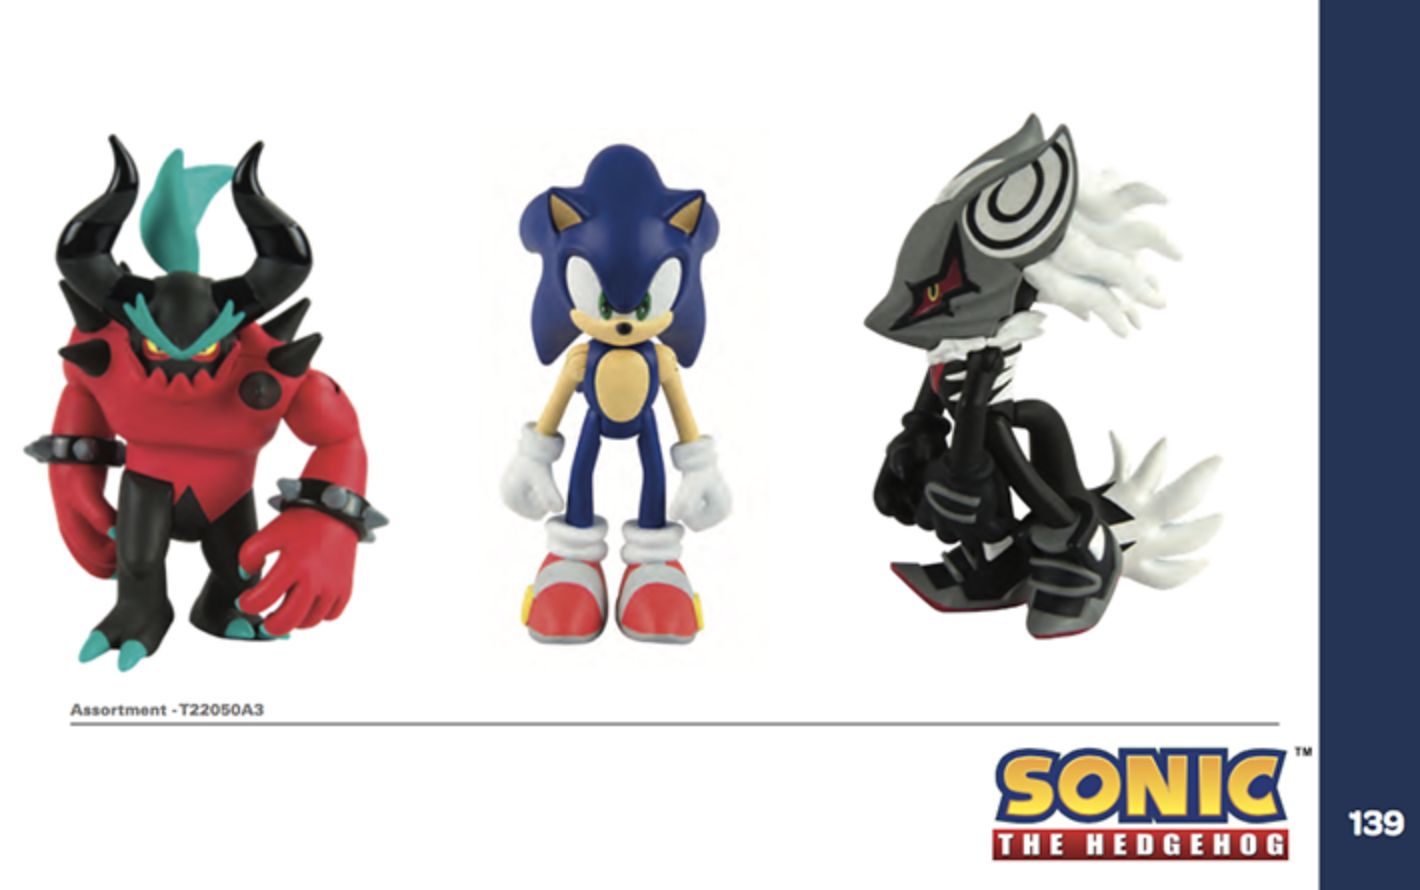 Tomy Reveals New Sonic The Hedgehog Action Figures Plush Toys And Comic Books For 2018 Segabits 1 Source For Sega News